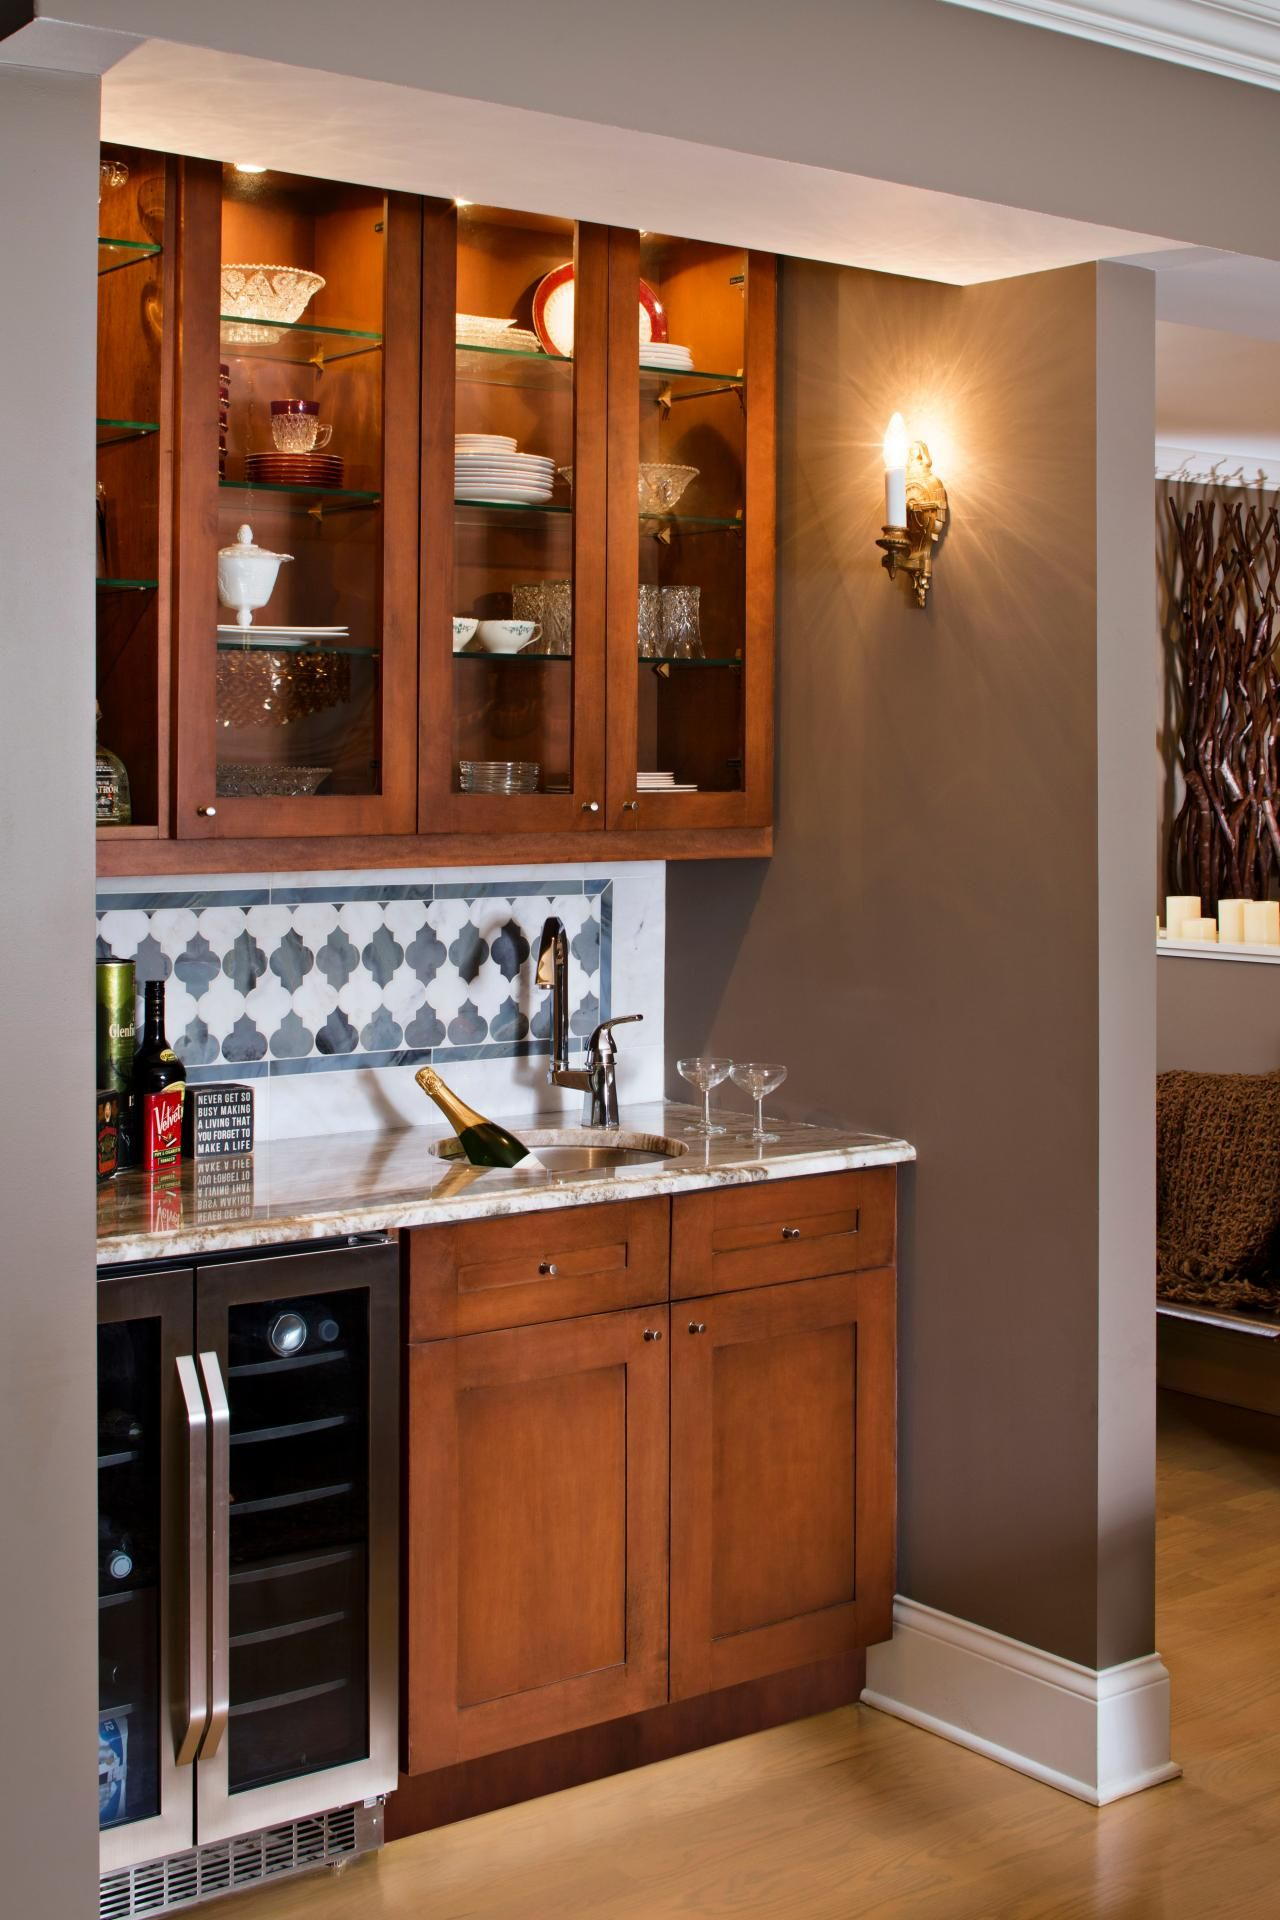 built in wall hutch with wine cooler - Google Search | Remodel ideas ...